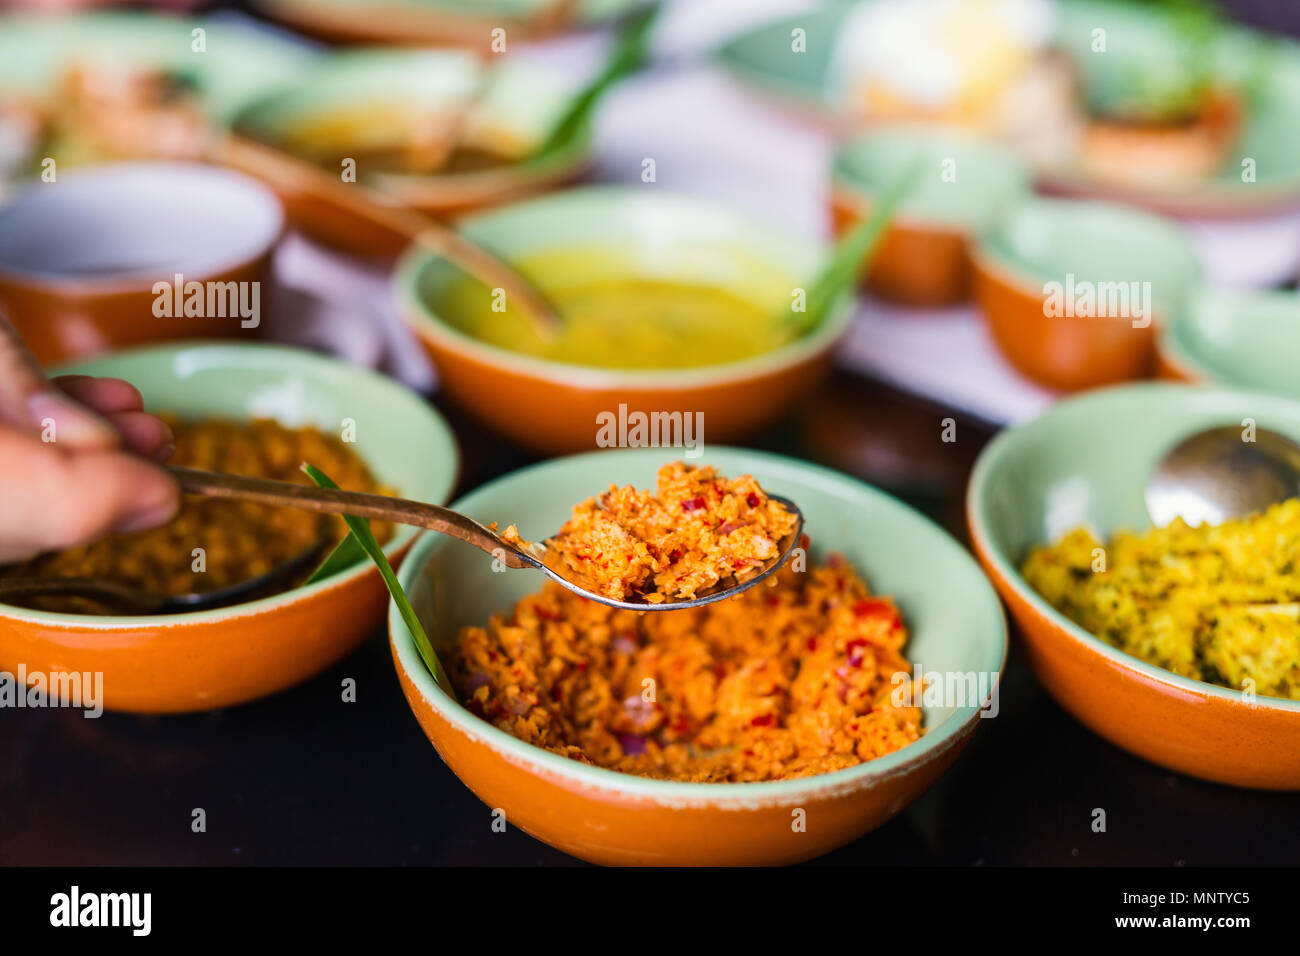 Coconut sambal close up on table with Sri Lankan food - Stock Image